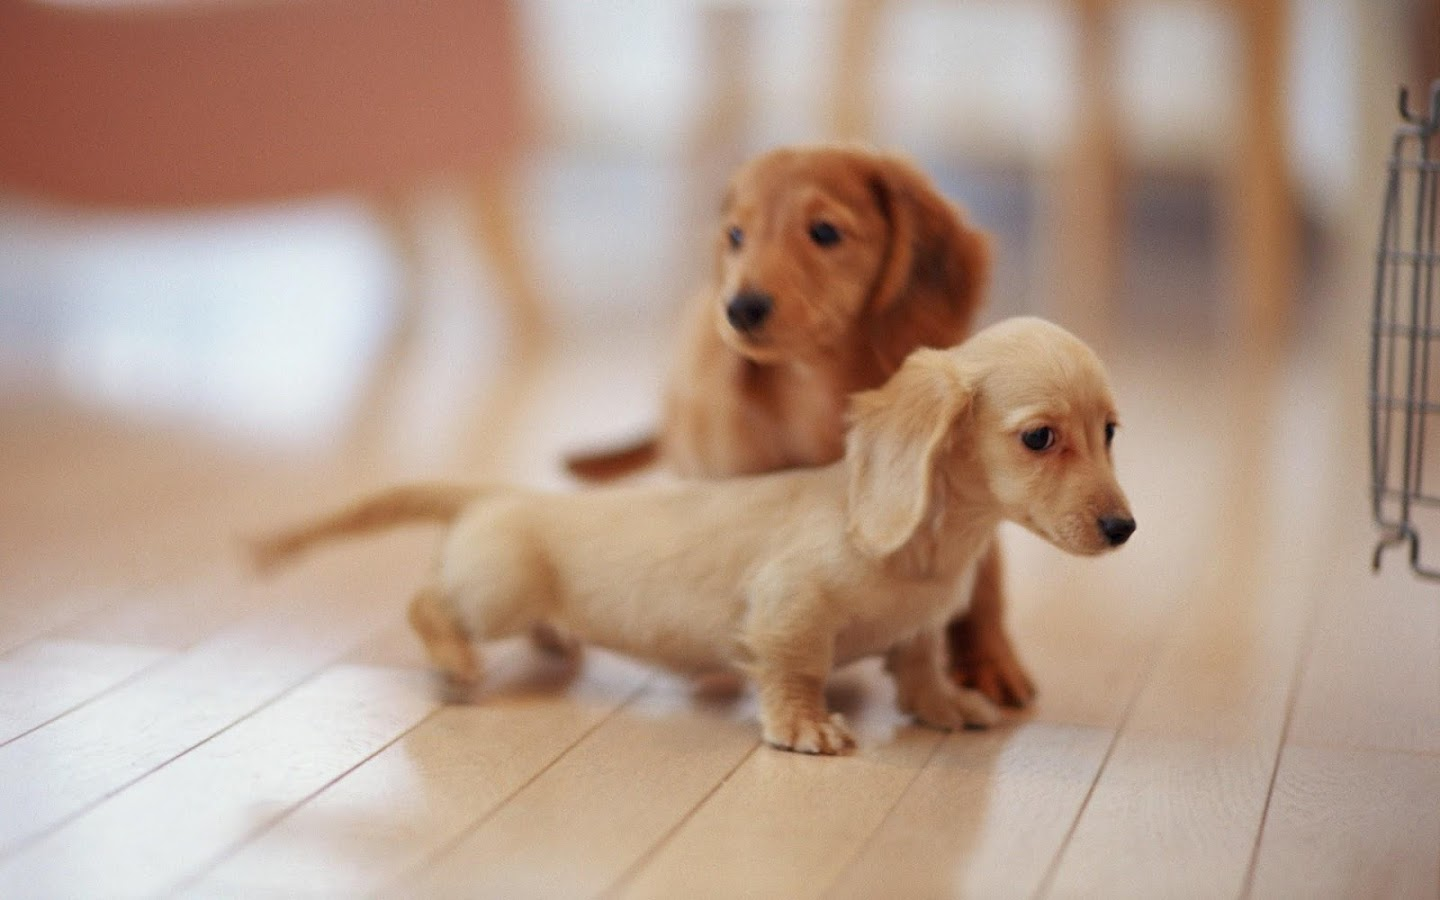 Lovely Dog Wallpaper HD Apl Android Di Google Play